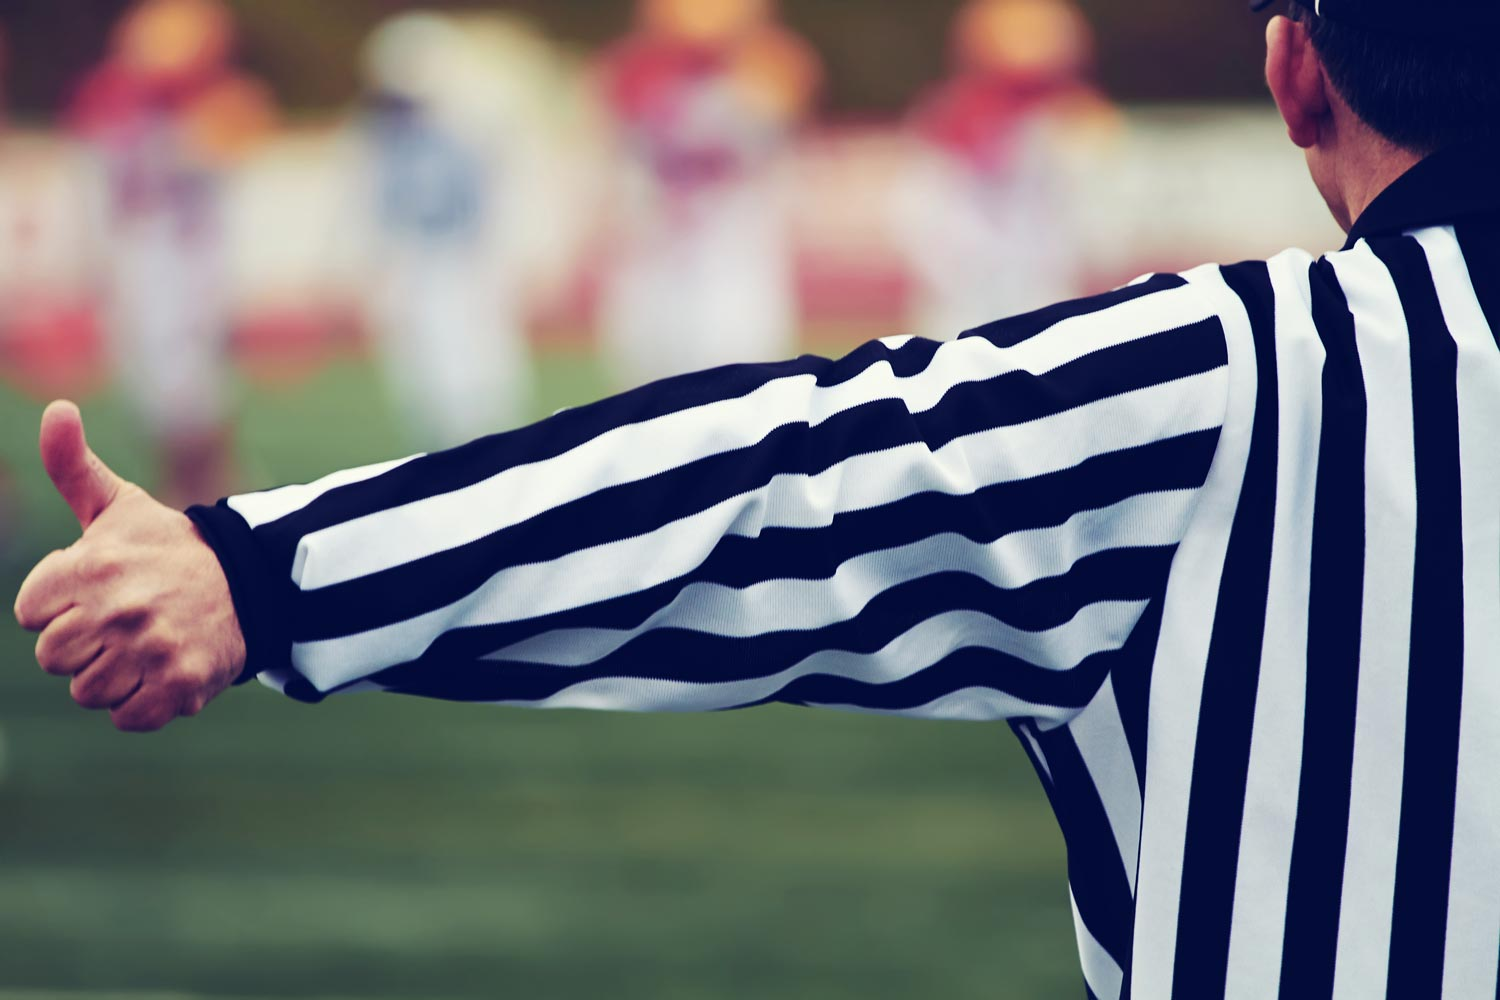 Darden Study: Video Replay Negatively Impacts Soccer Fans' View of Referees